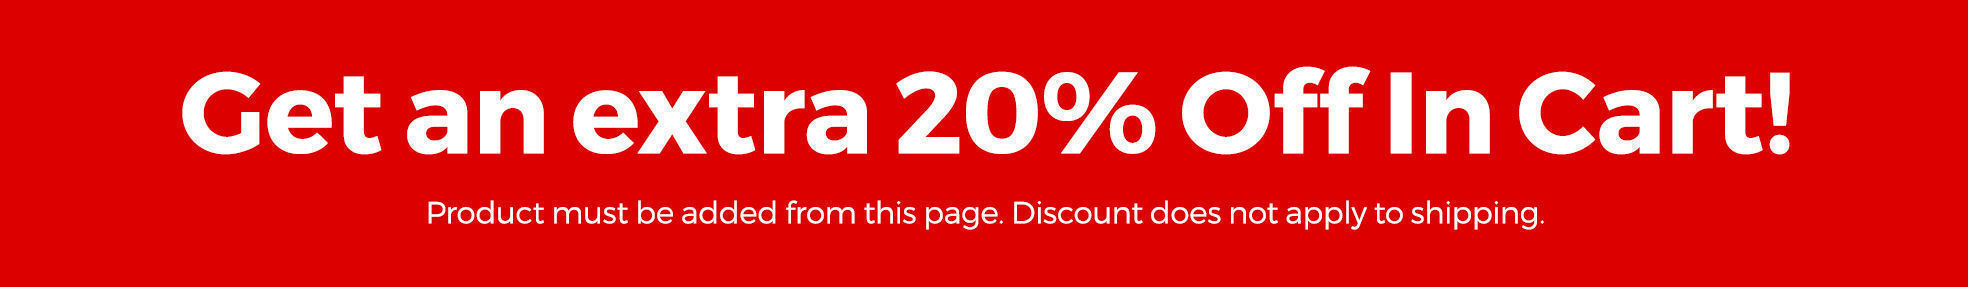 Get 20% Off In Cart: Catch Auspost Christmas Deals!